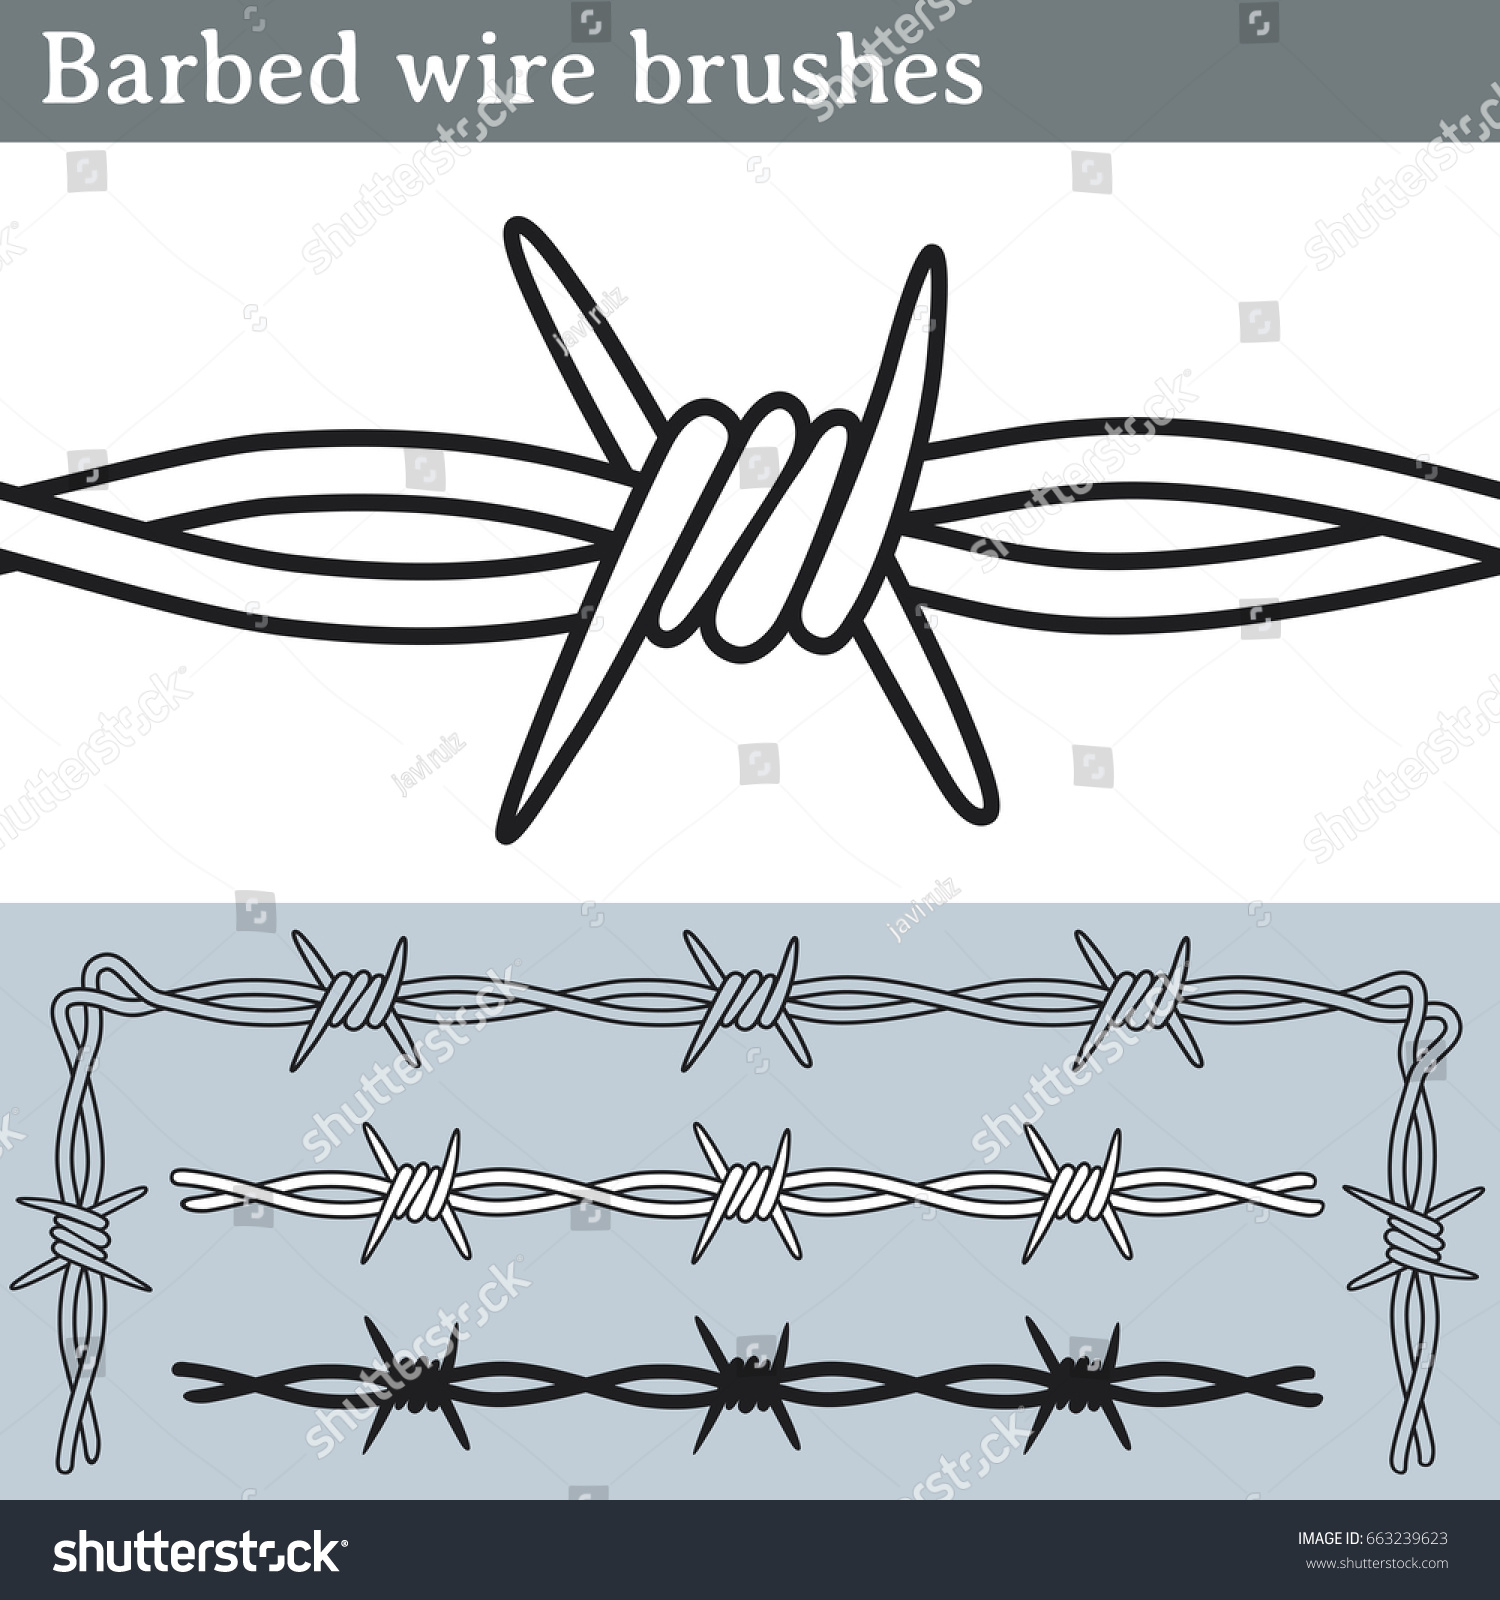 Barbed Wire Brushes Brushes Illustrator Draw Stock Vector (Royalty ...